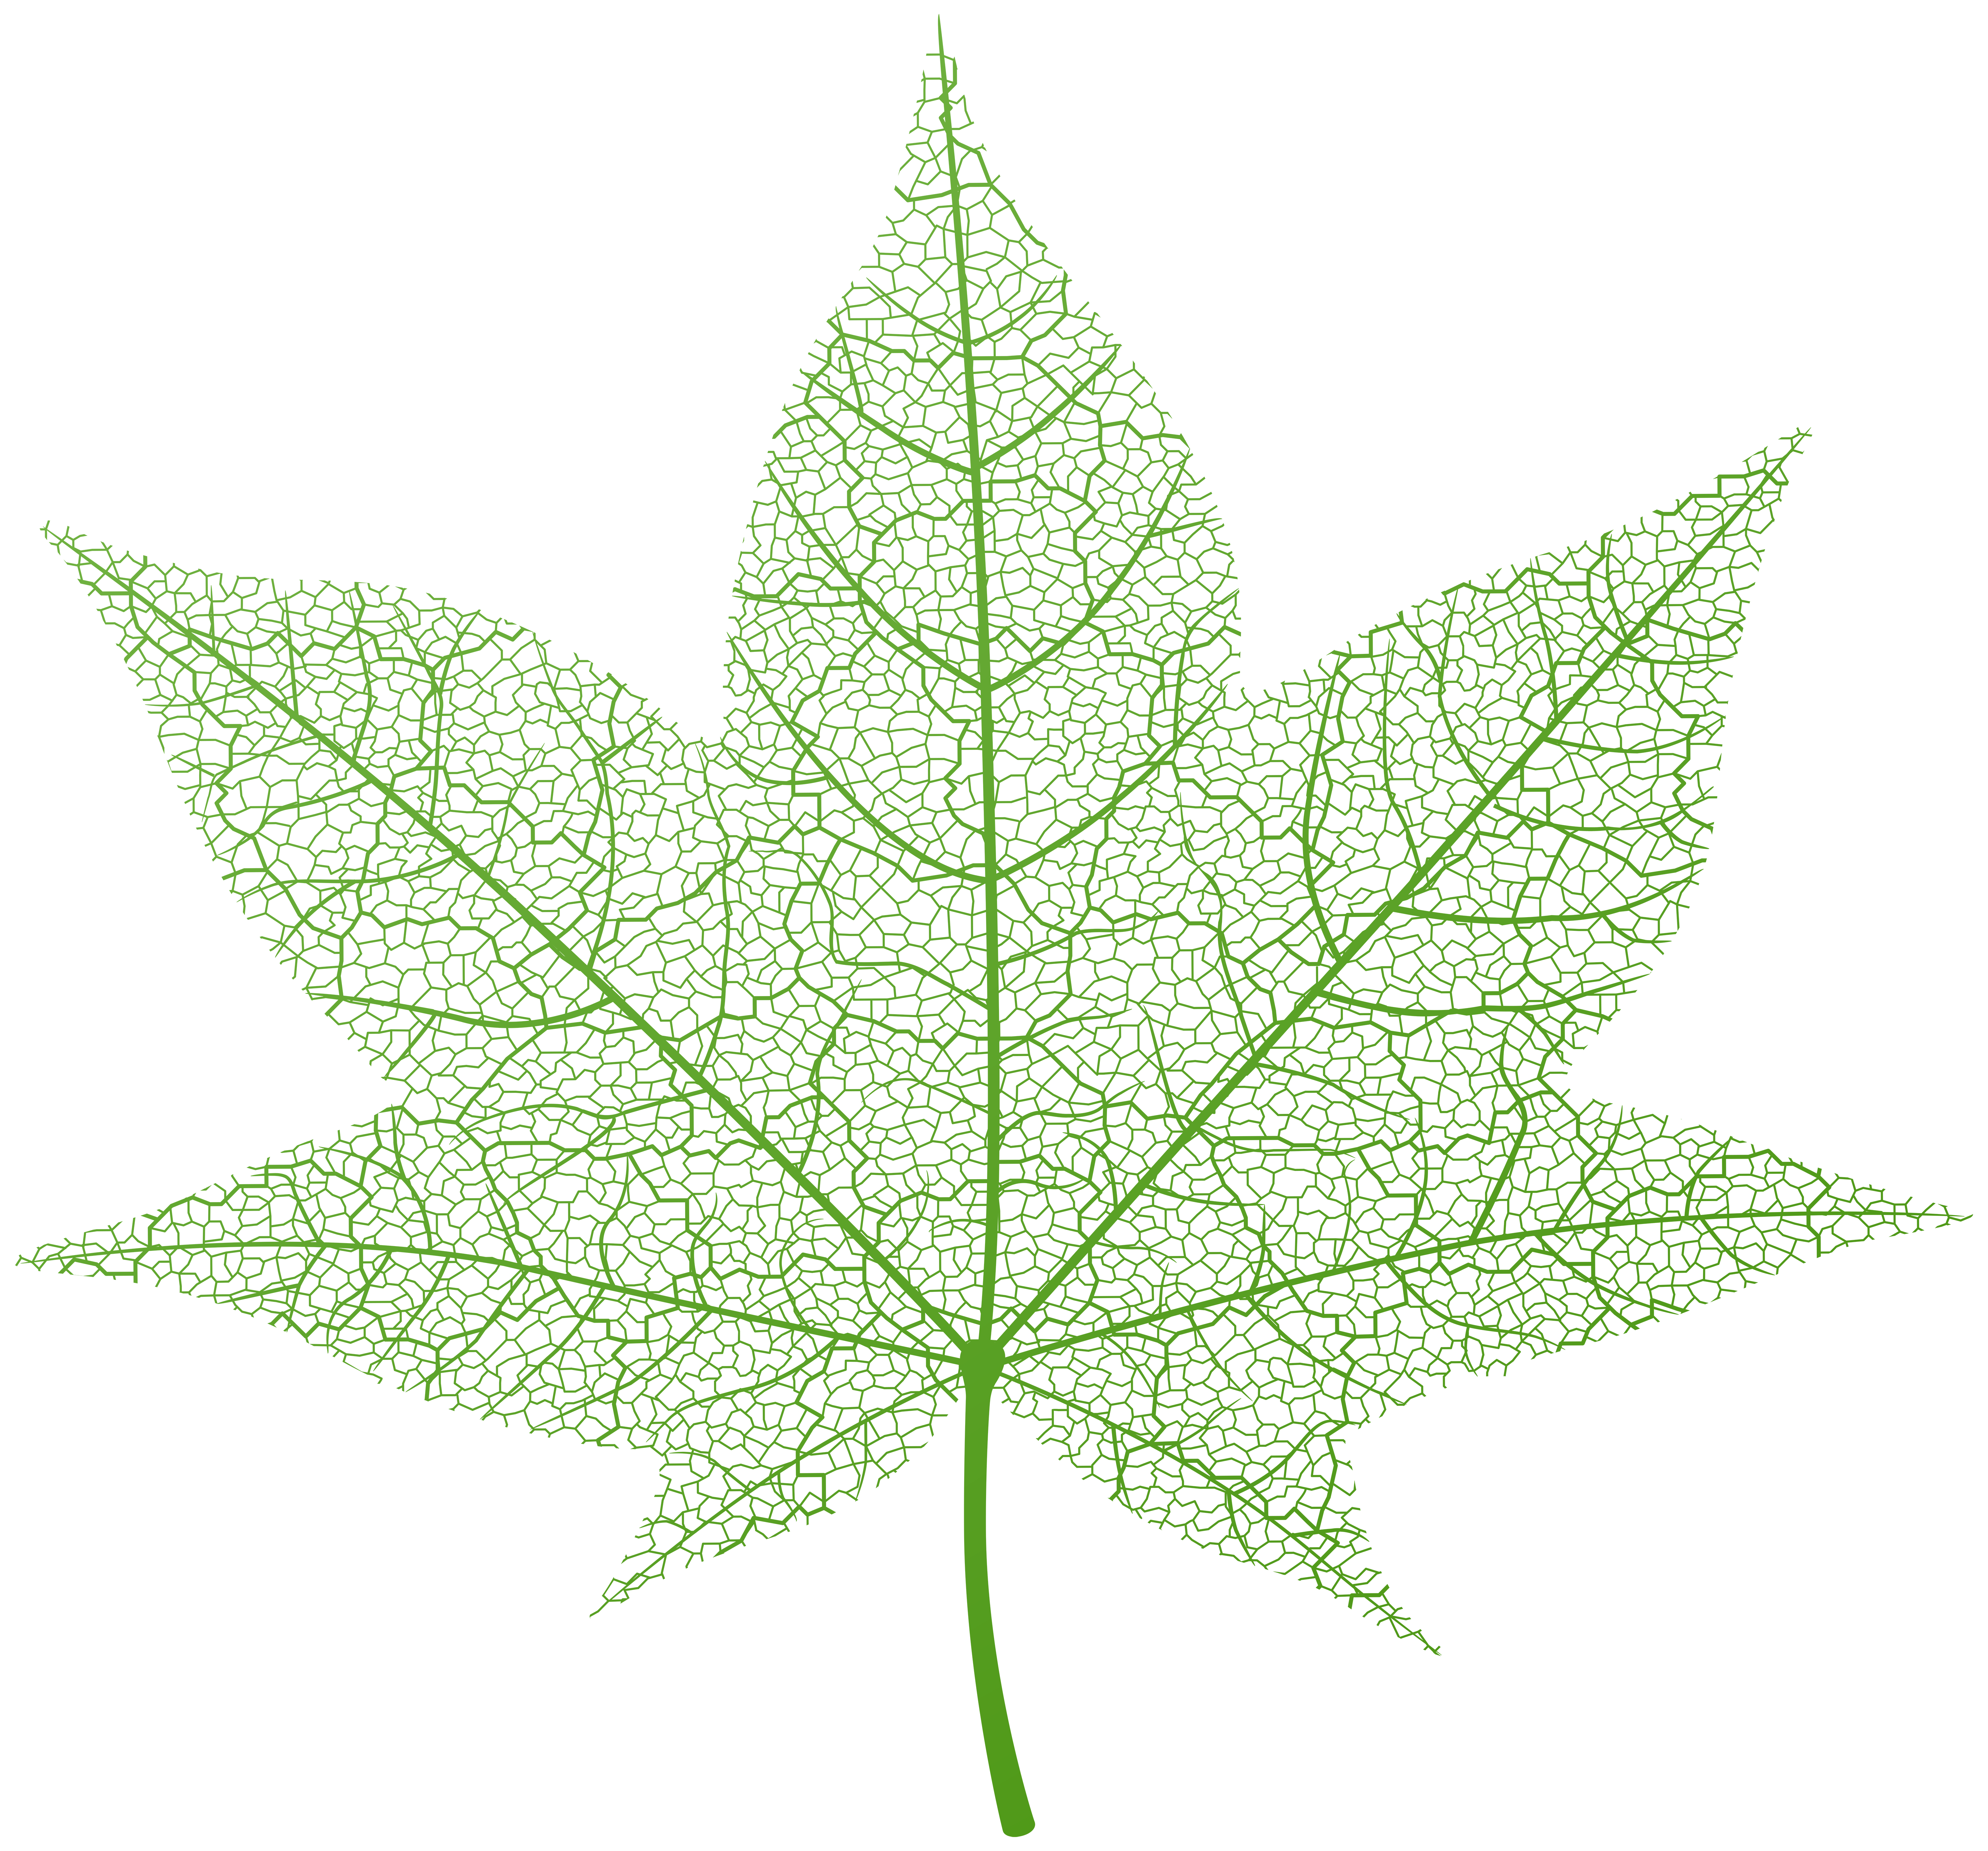 Flower burst clipart png library download Transparent Green Autumn Leaf PNG Clip Art Image | Gallery ... png library download